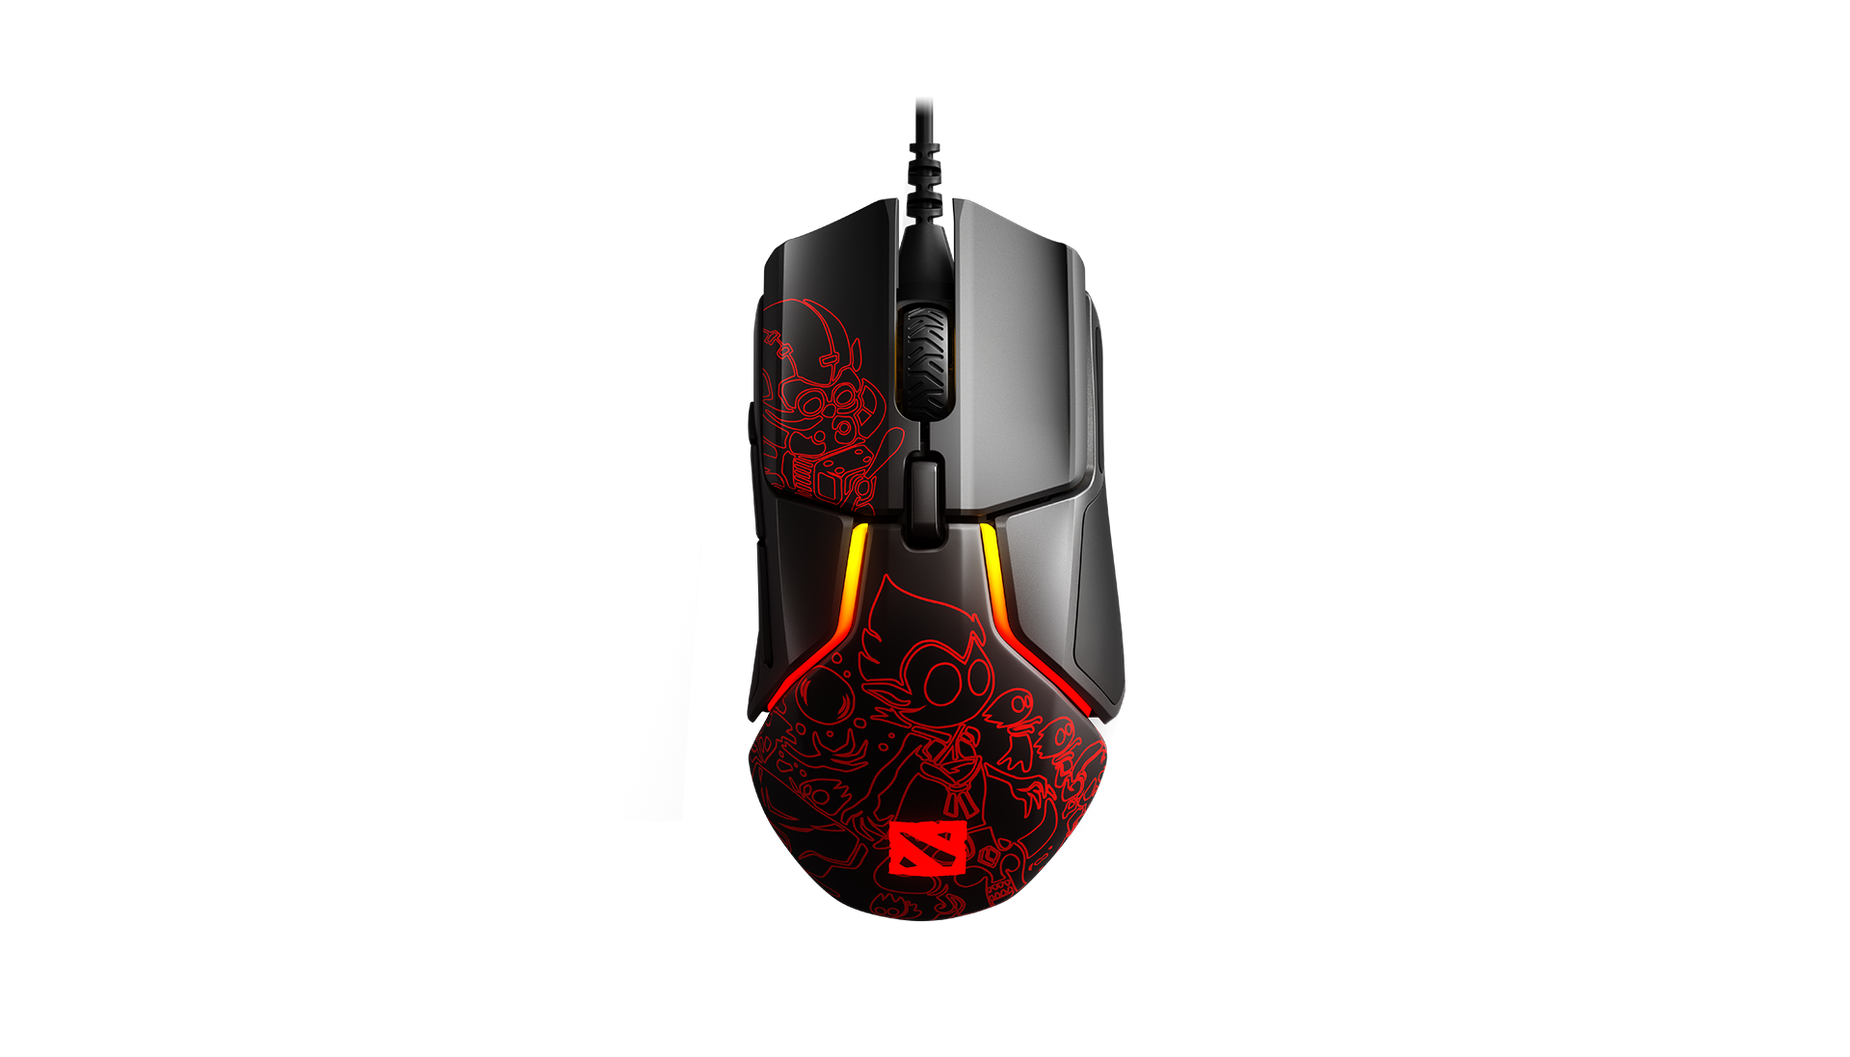 Rival 600 Dota 2 Edition, top view